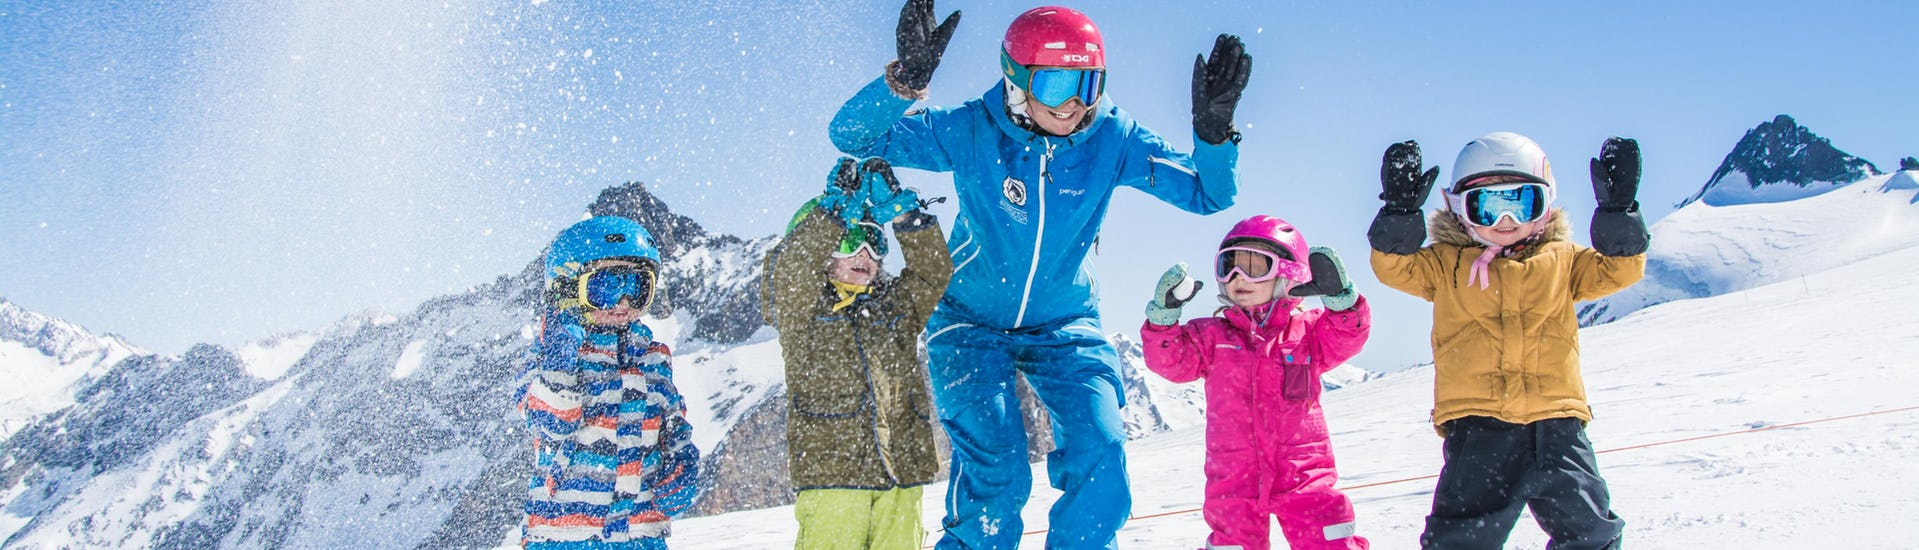 Ski Discovery Lessons for Kids (from 4 years) - Beginners